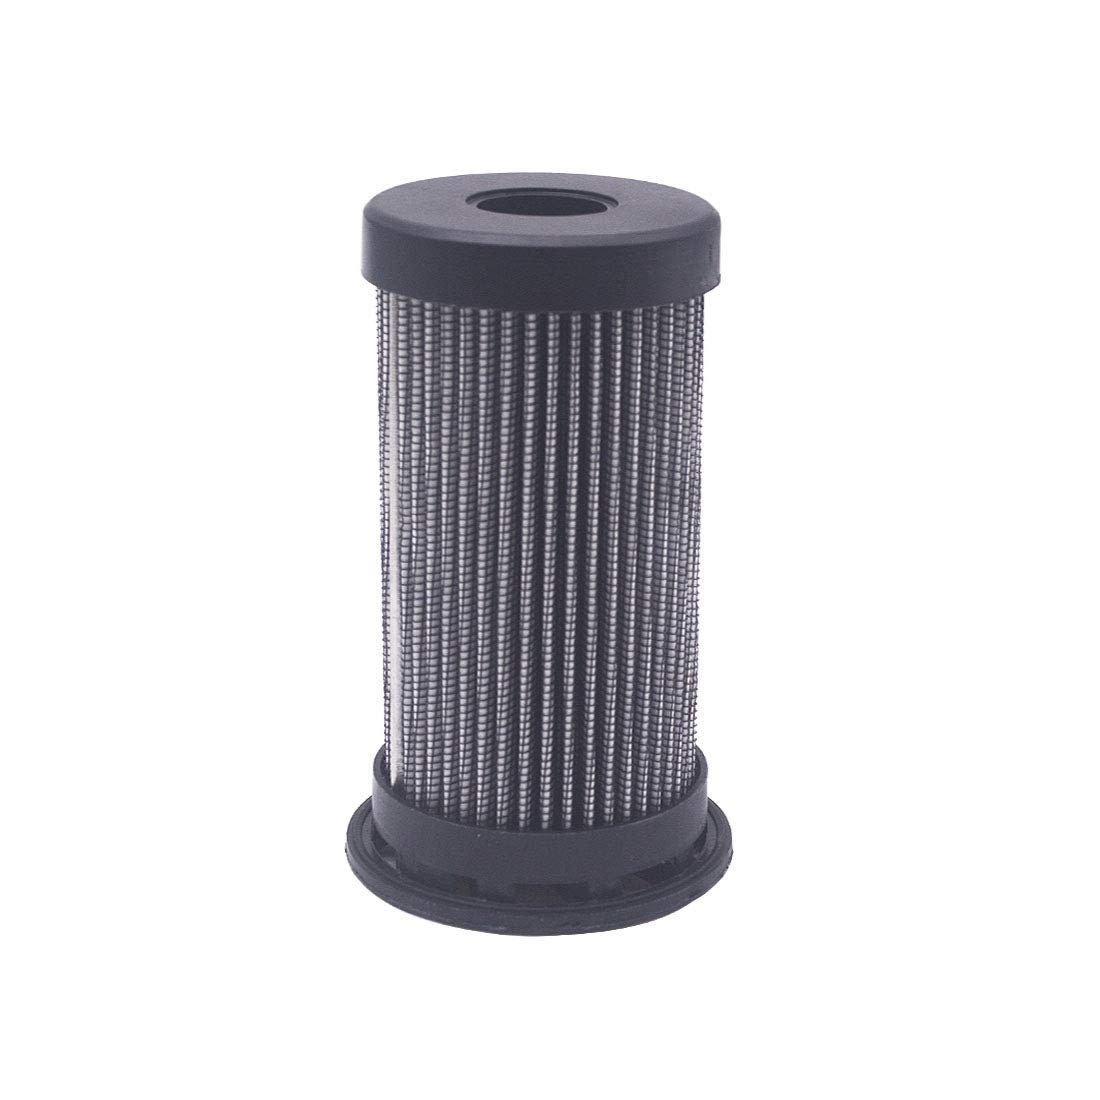 For Bobcat Skid Steer Hydraulic Filter A300 S220 S250 S300 S330 T250 T300 T320